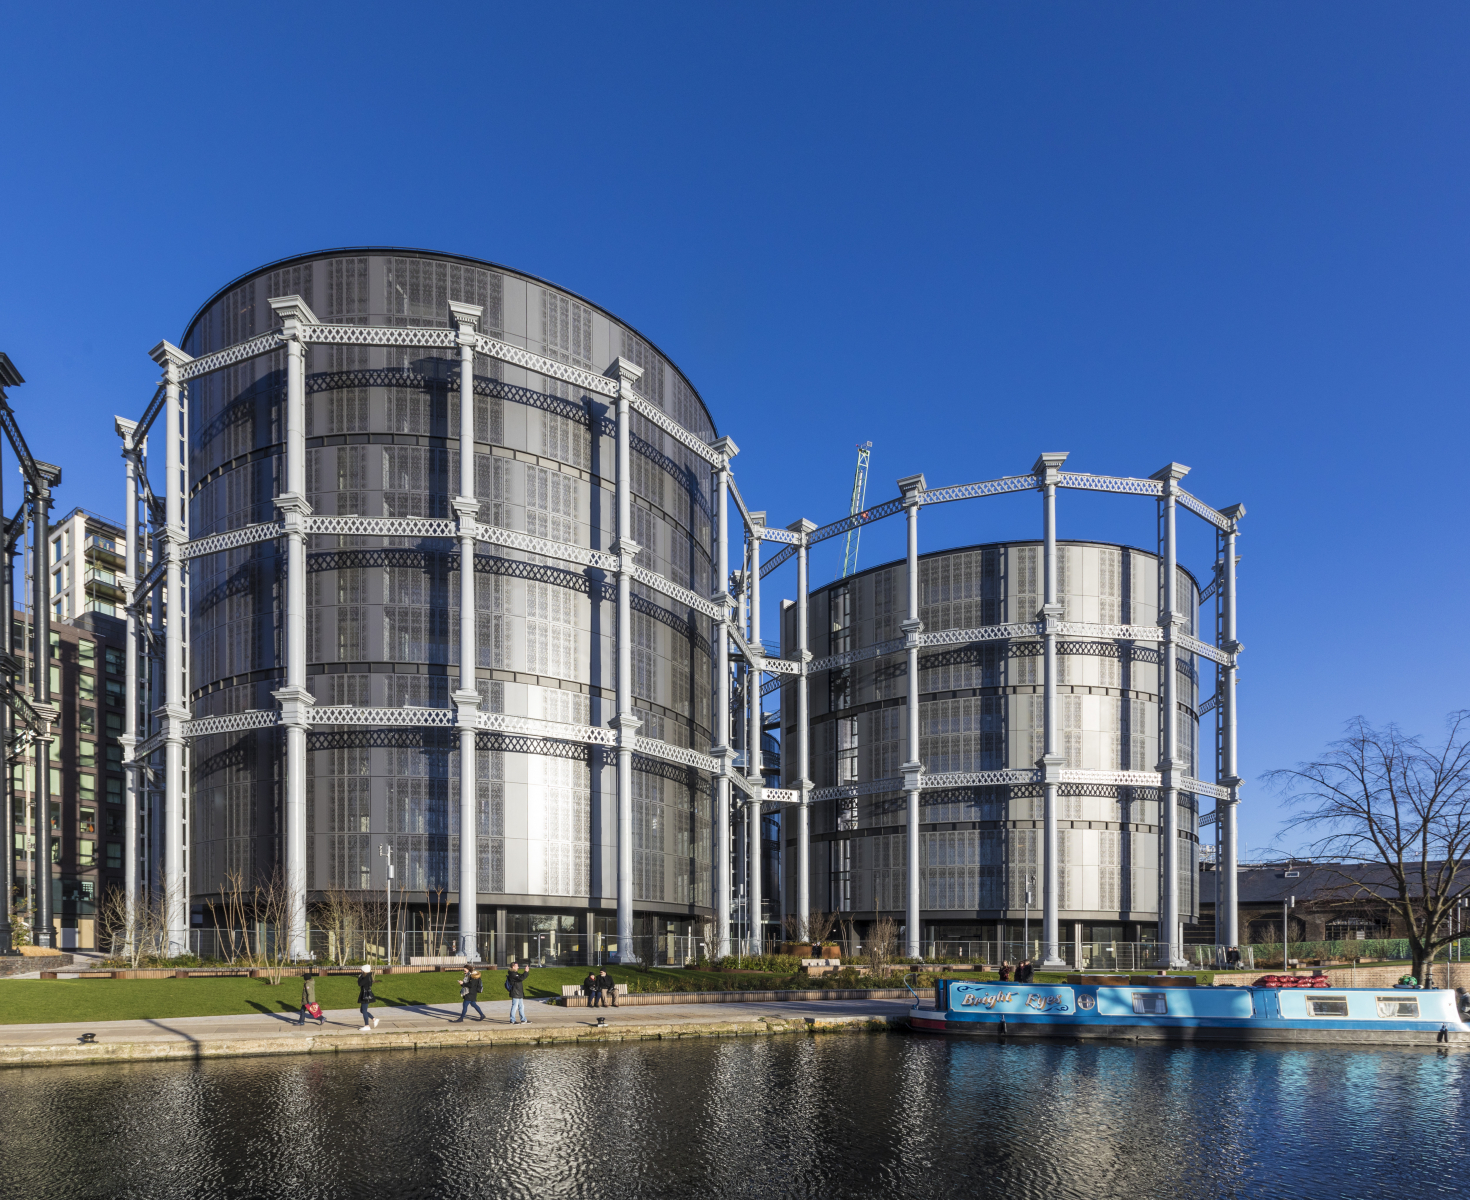 Gas Holder Triplets